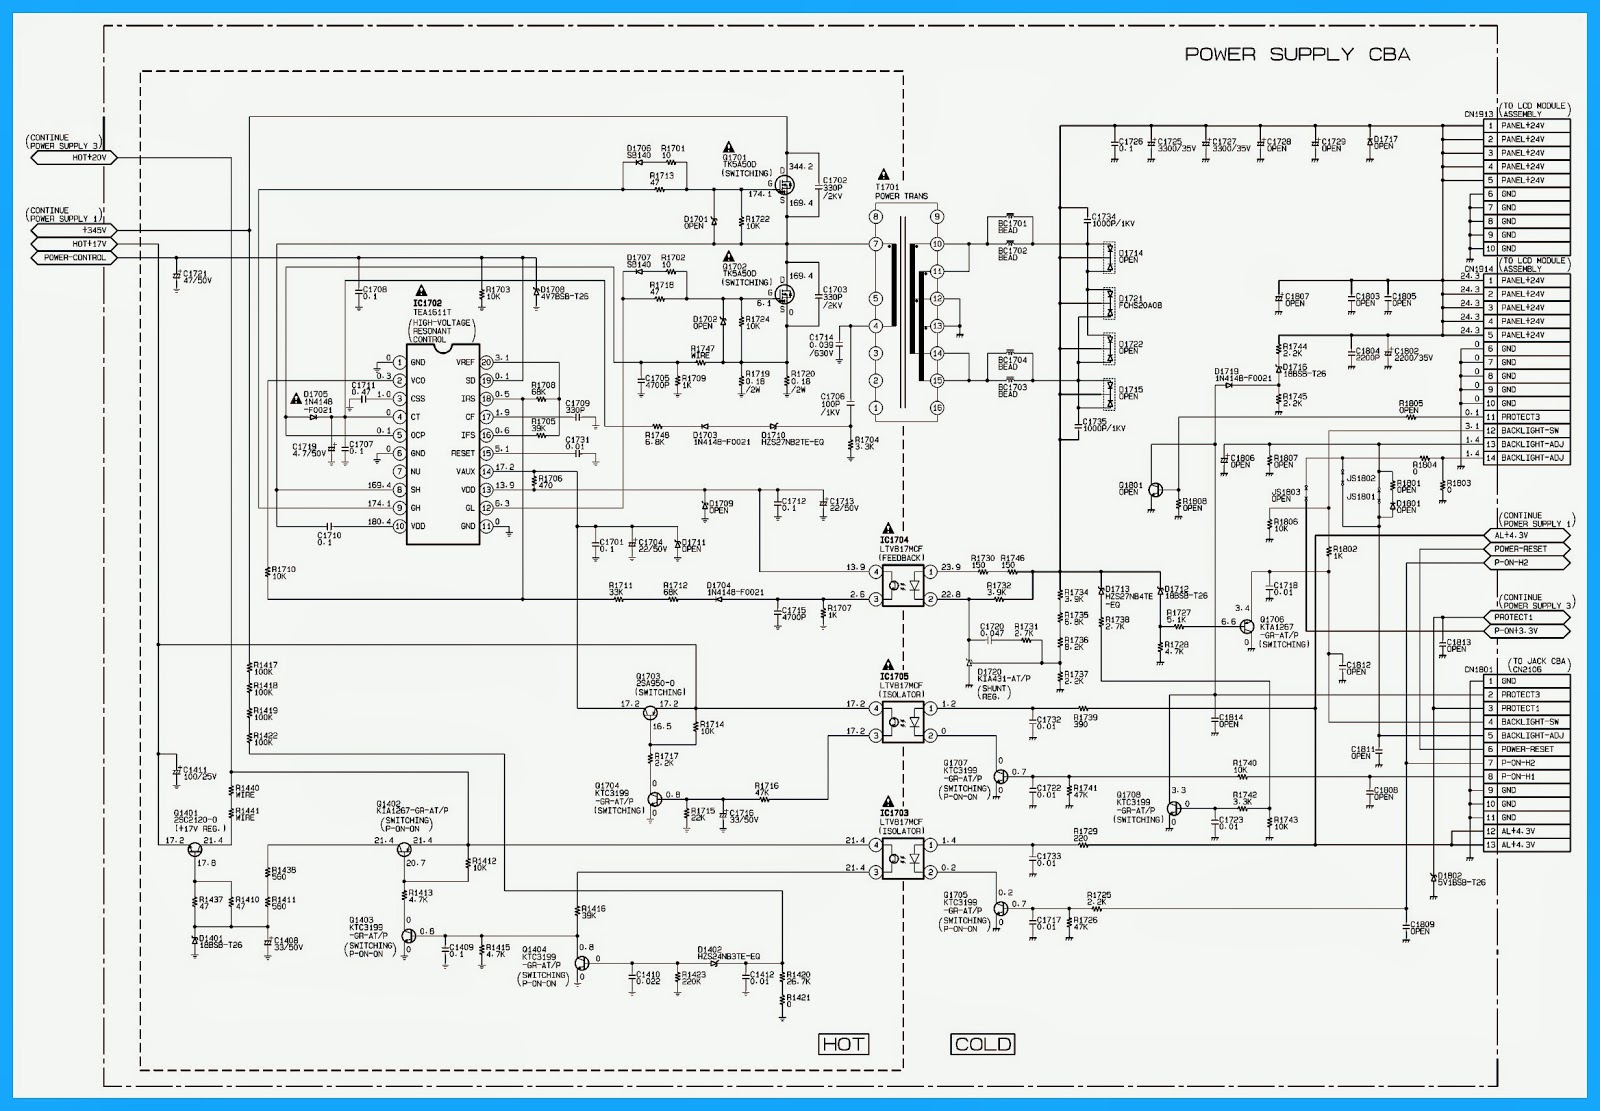 hight resolution of schematic diagram for emerson tvs emerson appliances emerson tv input emerson tv remote